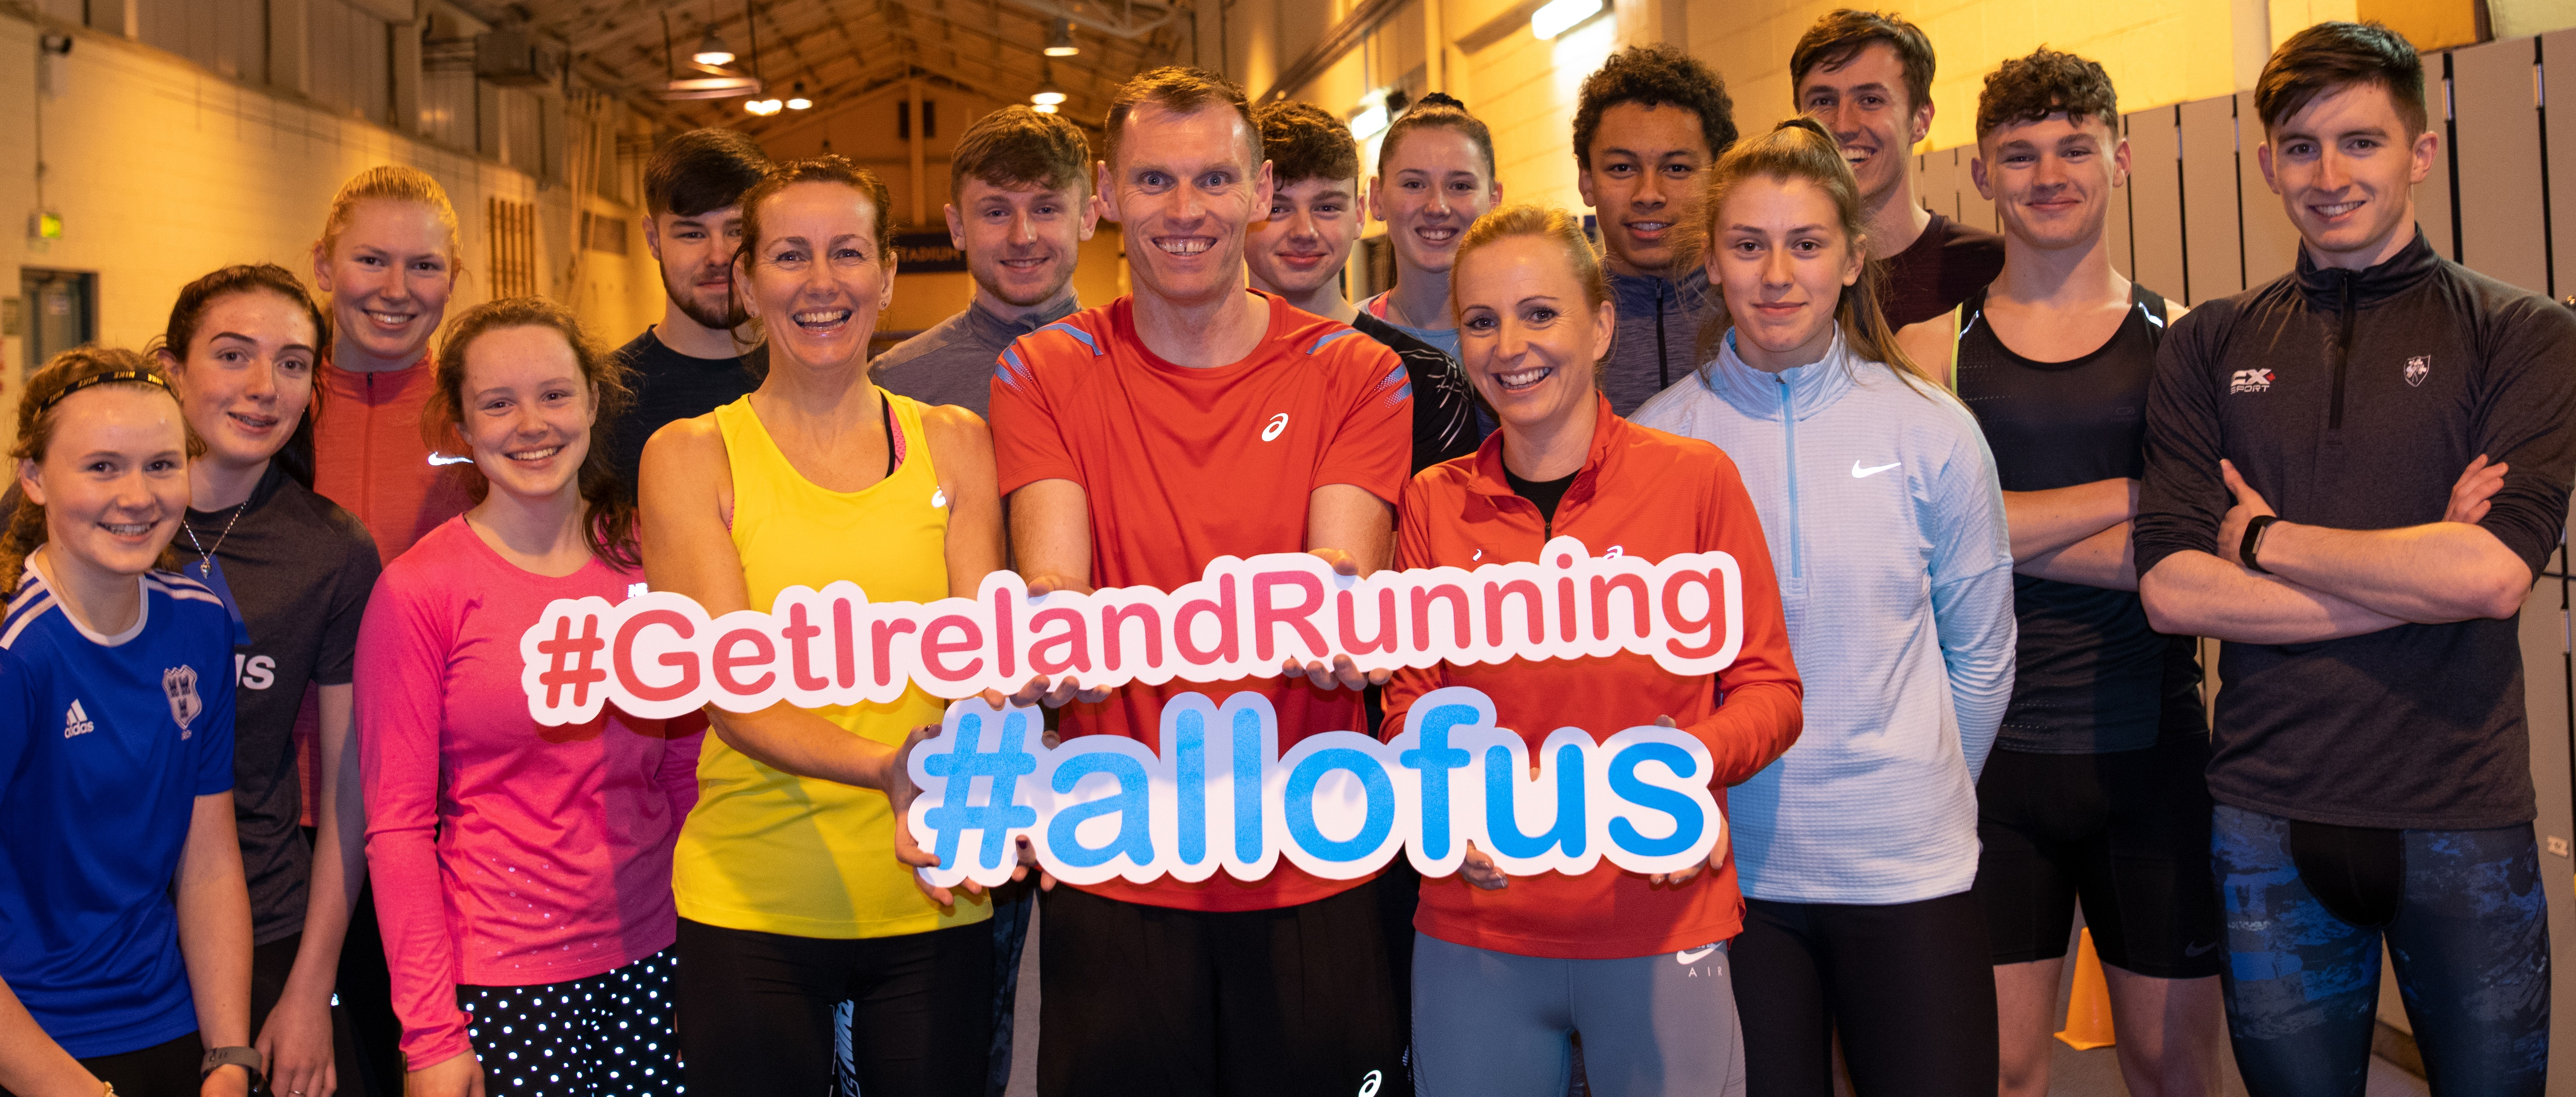 Launch of Get Ireland Running Campaign